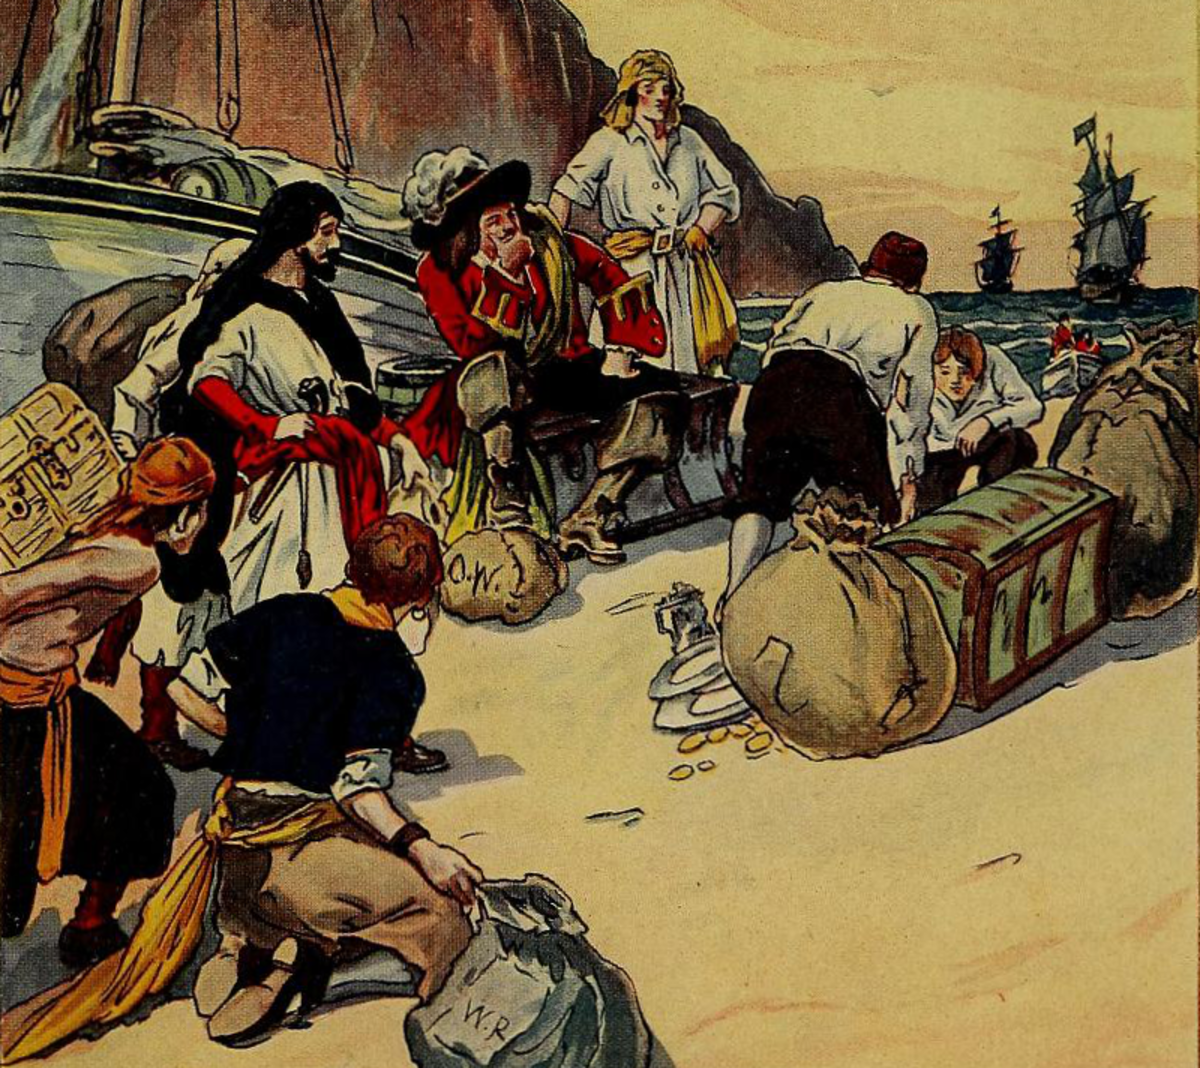 Henry Morgan, a buccaneer who was not a pirate, but a privateer in the employ of England, divides plundered treasure among his crew.